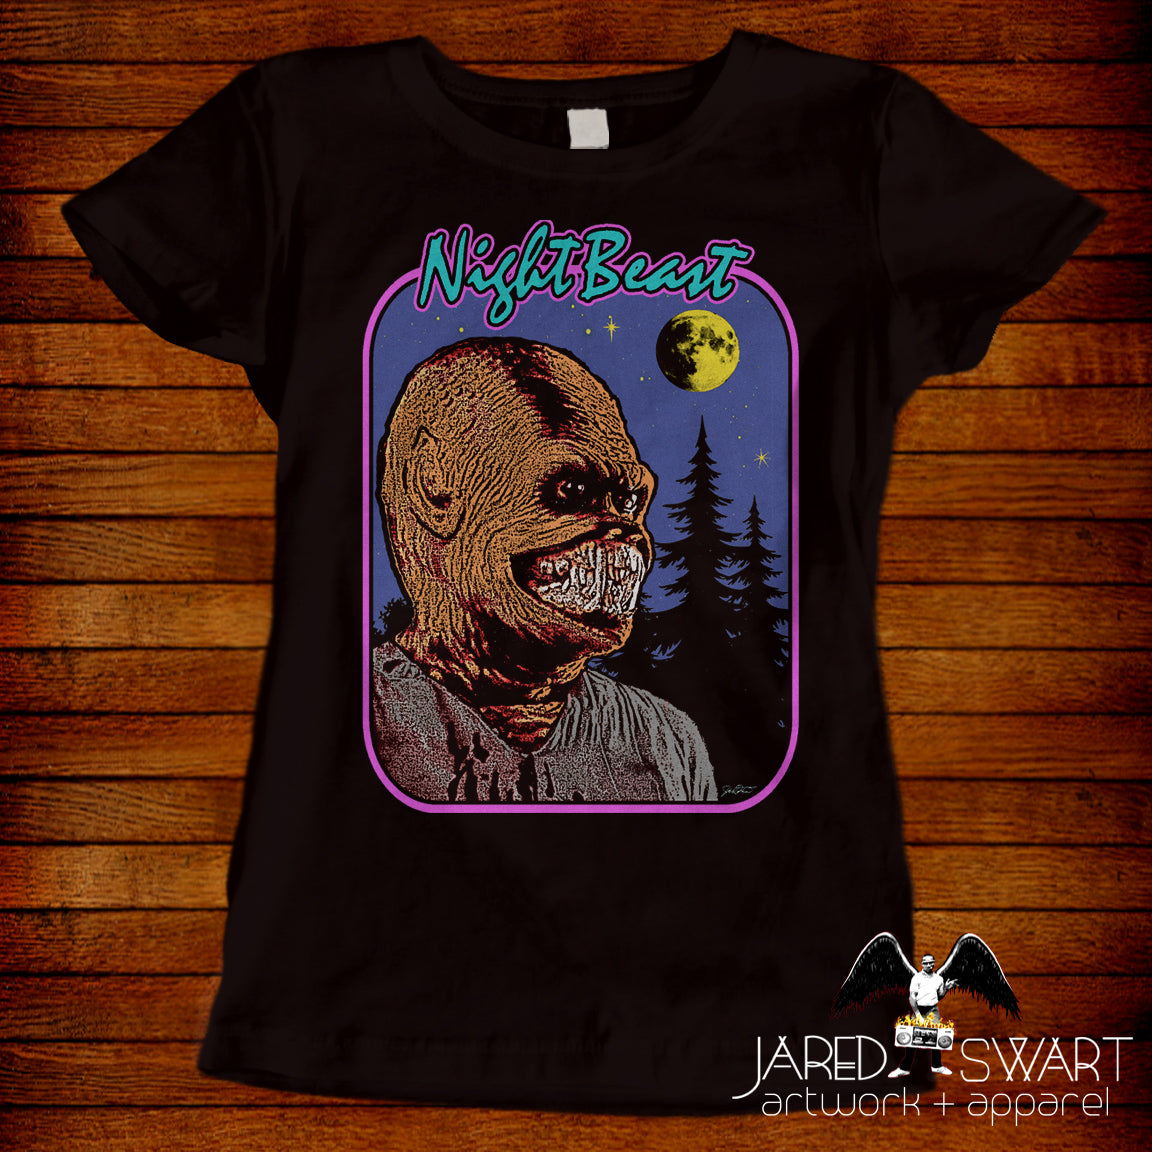 NightBeast T-shirt